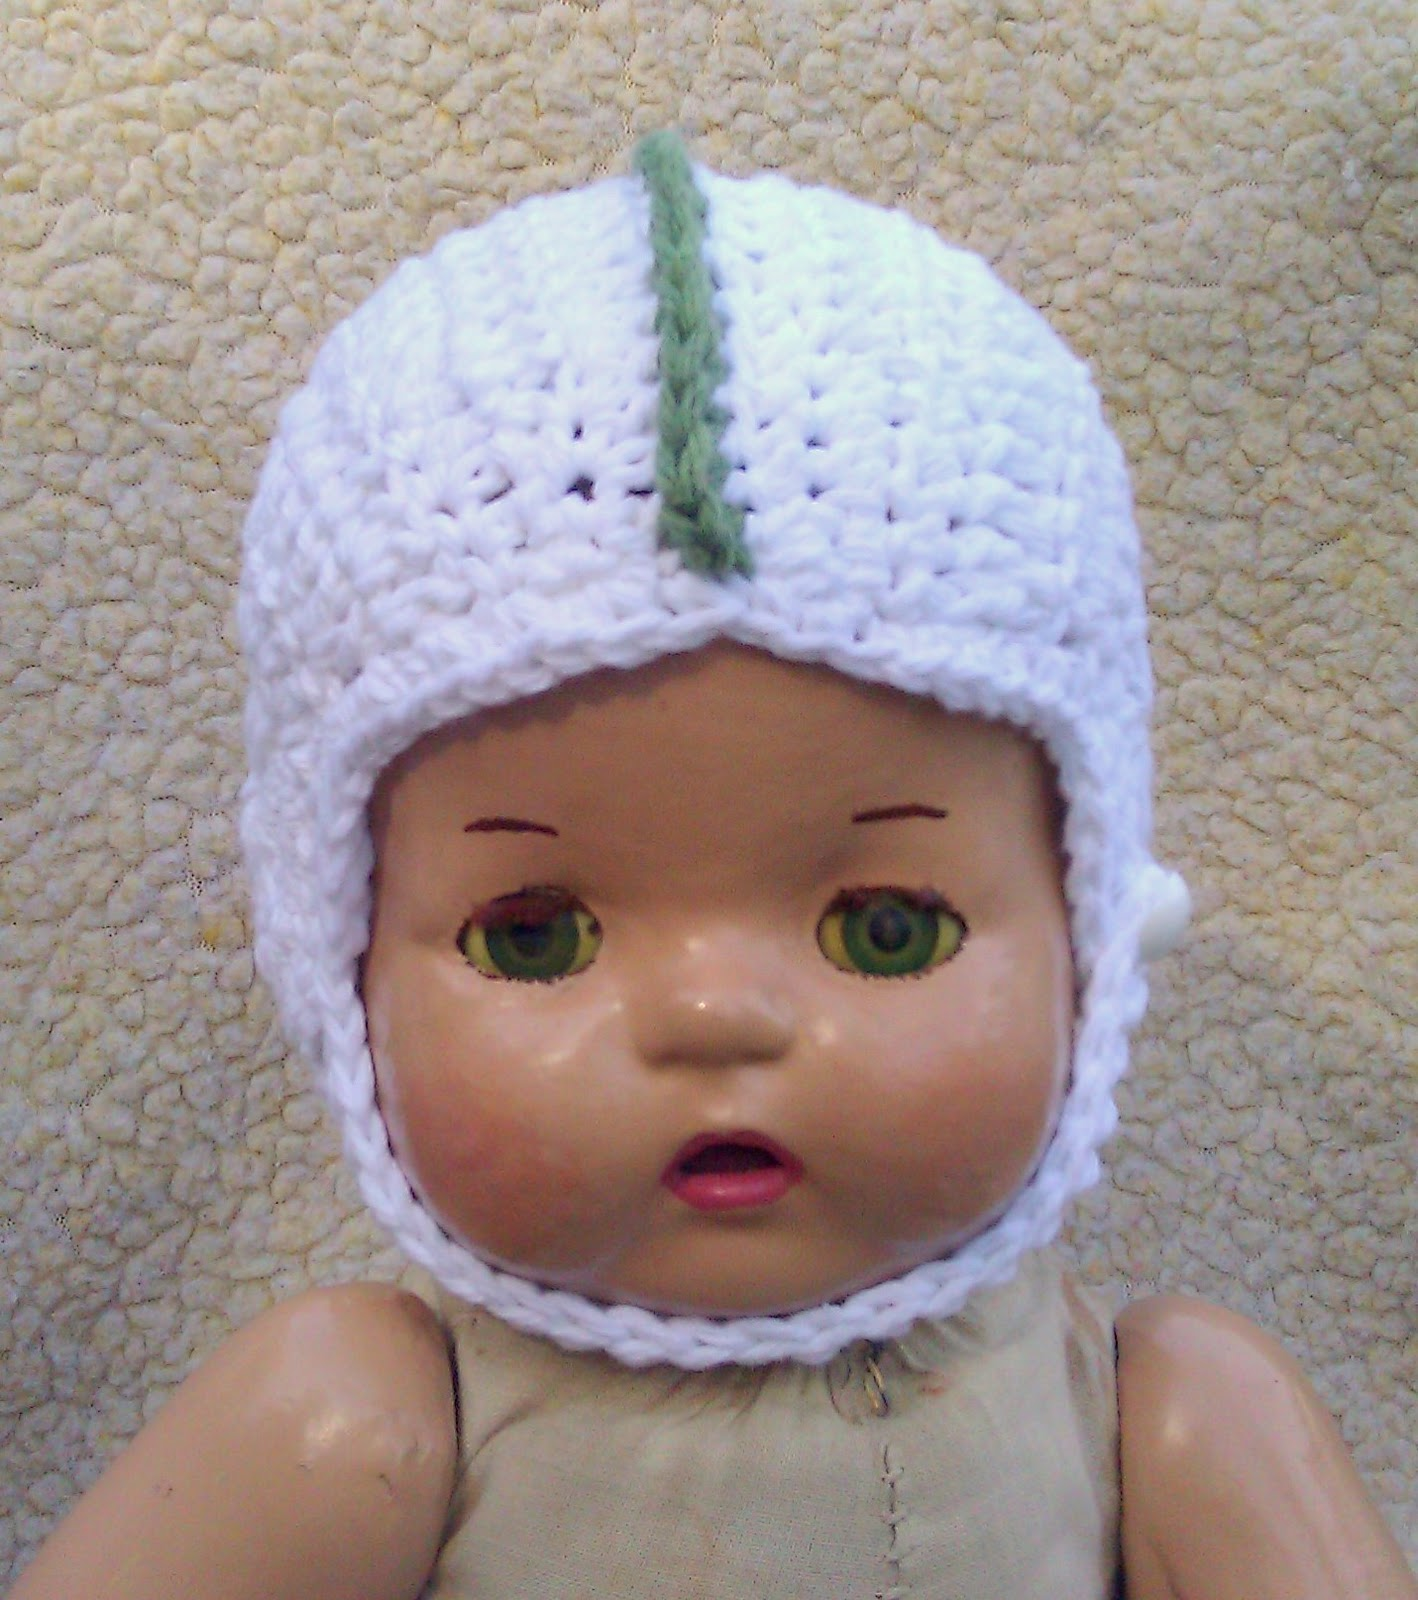 Baby Crochet Football Helmet Free Pattern